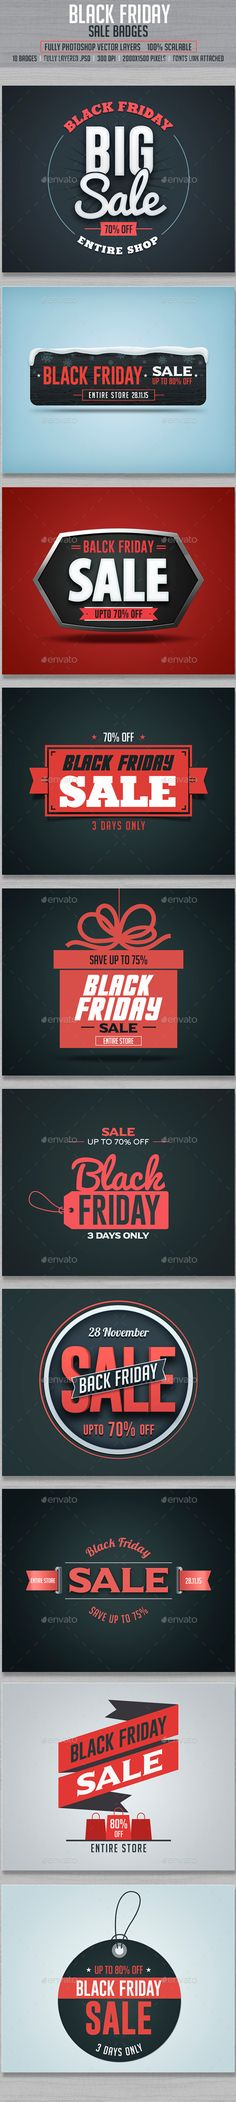 Black Friday Sale Badges Template PSD #design Download: http://graphicriver.net/item/black-friday-sale-badges/13423140?ref=ksioks